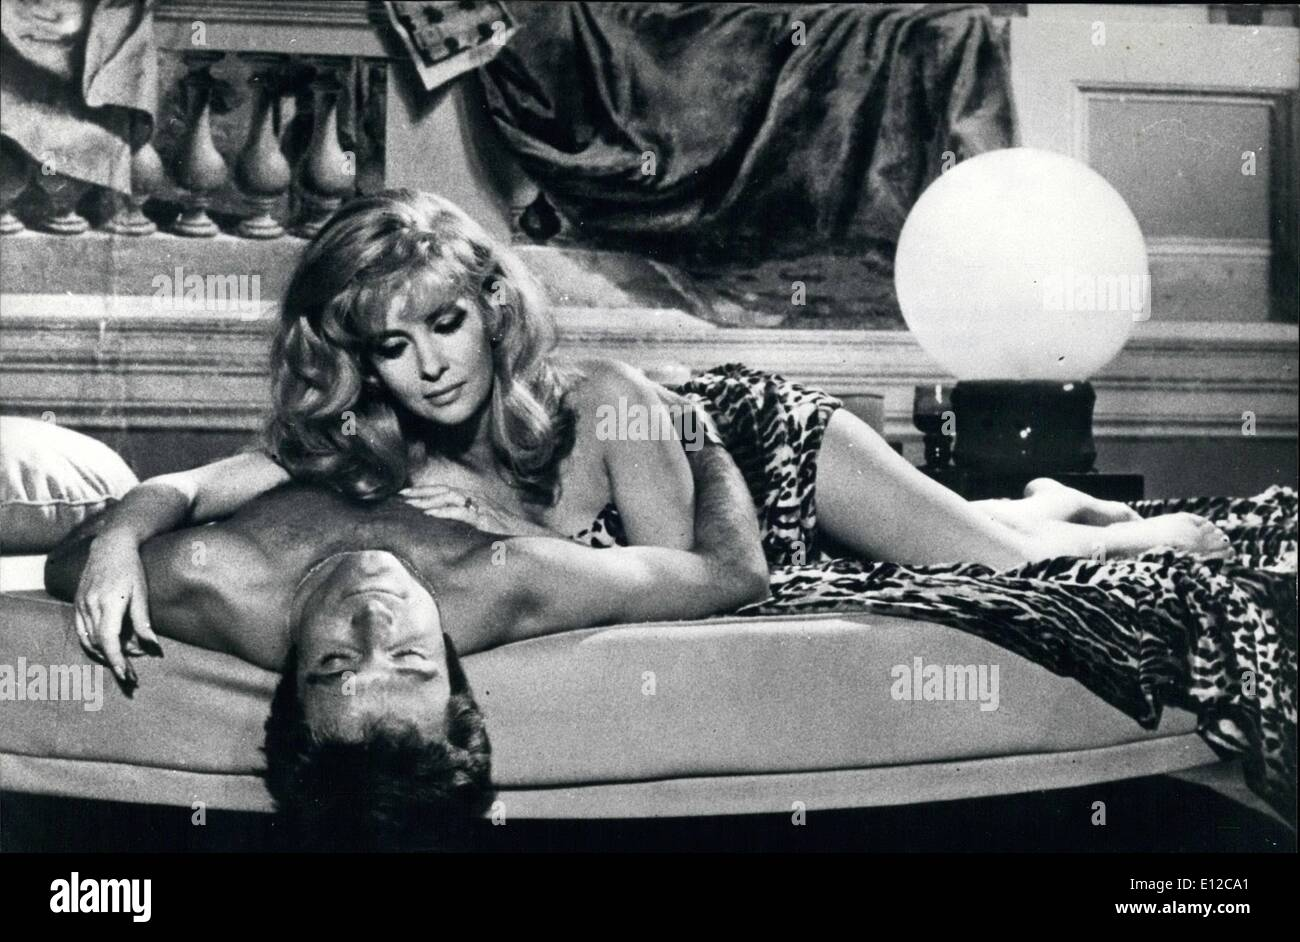 Dec. 16, 2011 - Seducent actress Gina Lollobrigida playing the role of a millionaire business woman in the film 'Stuntman'' that is turned now in Rome. Photo shows actress Gina Lollobrigida with Robert Viharo in the scene of the film ''Stuntman' - Stock Image